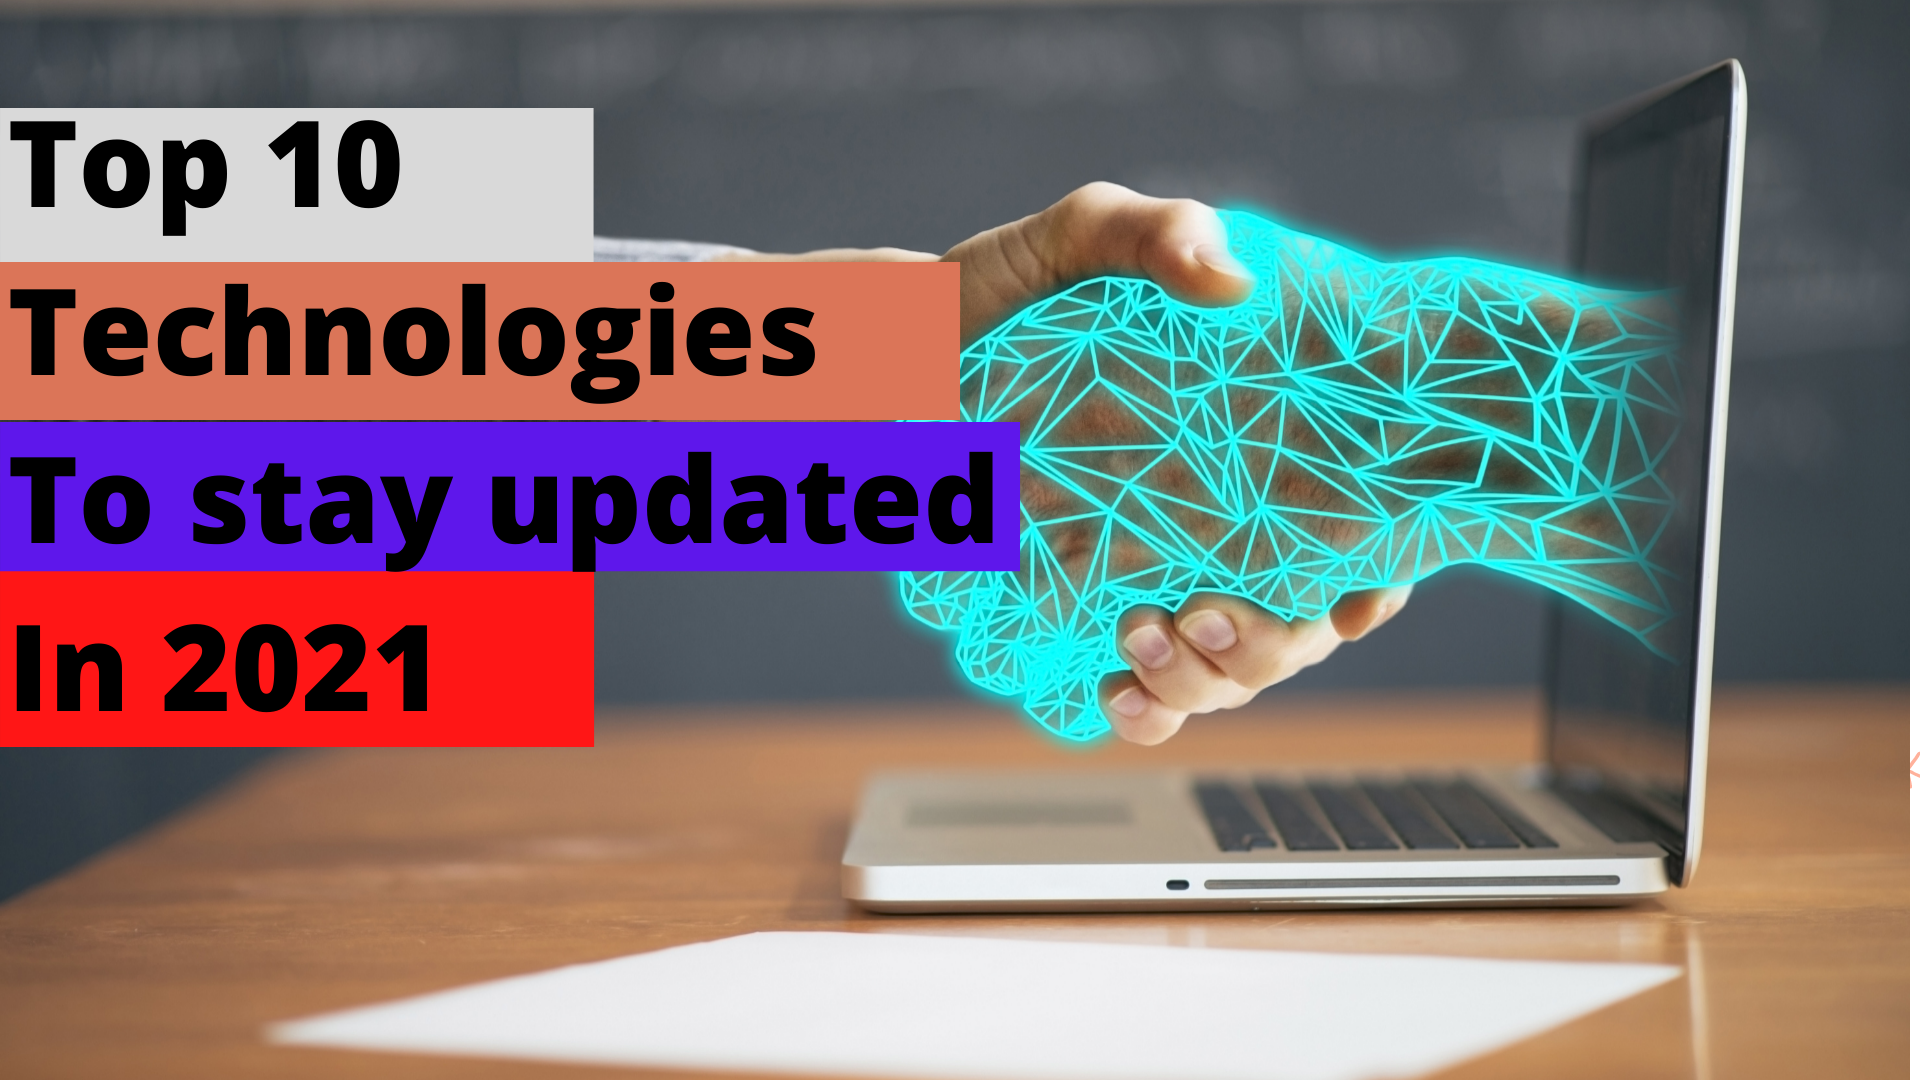 Top 10 technologies to stay updated in 2021